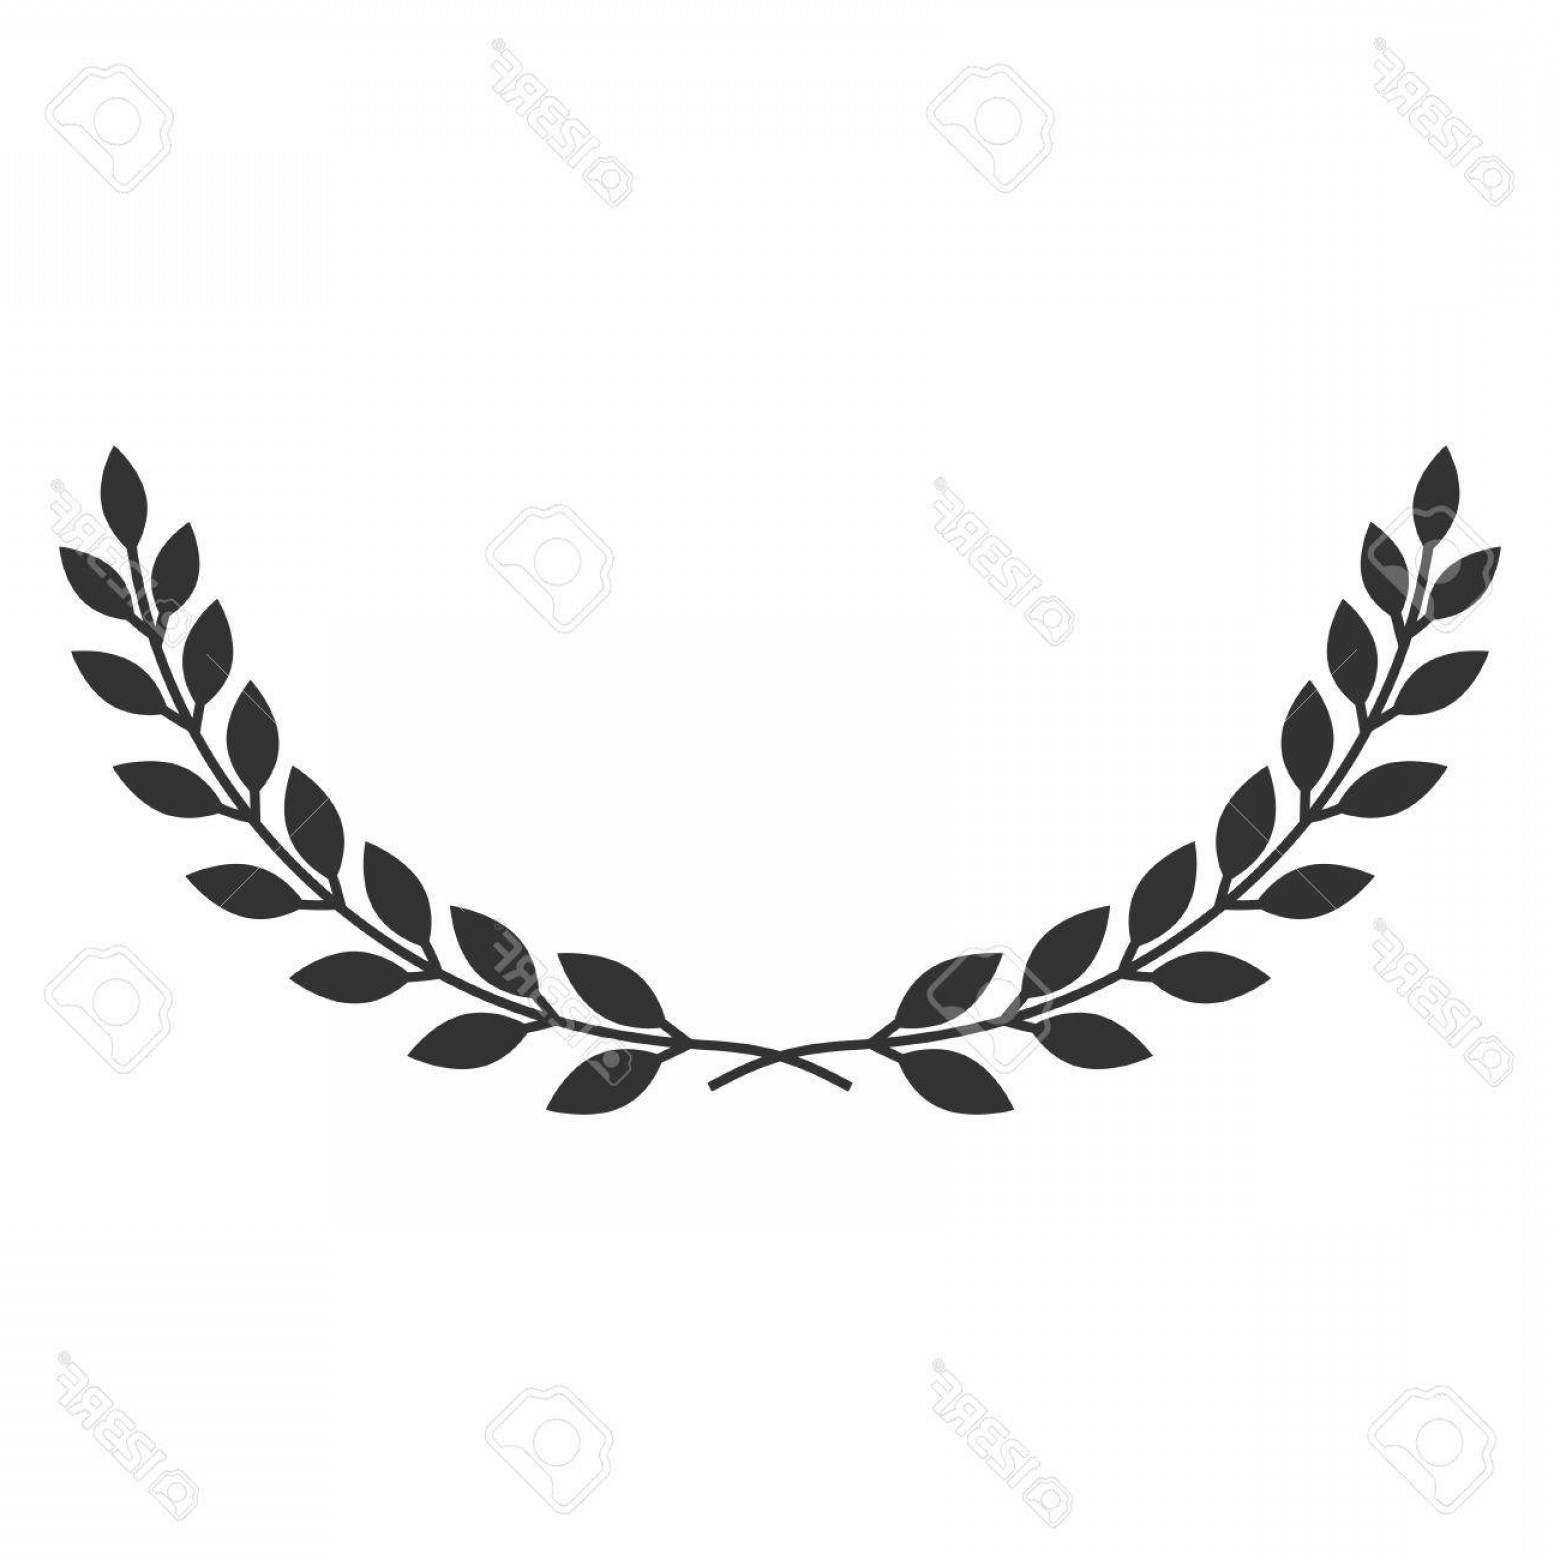 Half Leaf Wreath Vector: Photostock Vector A Laurel Wreath Icon Symbol Of Victory And Achievement Vintage Design Element For Medals Awards Coat